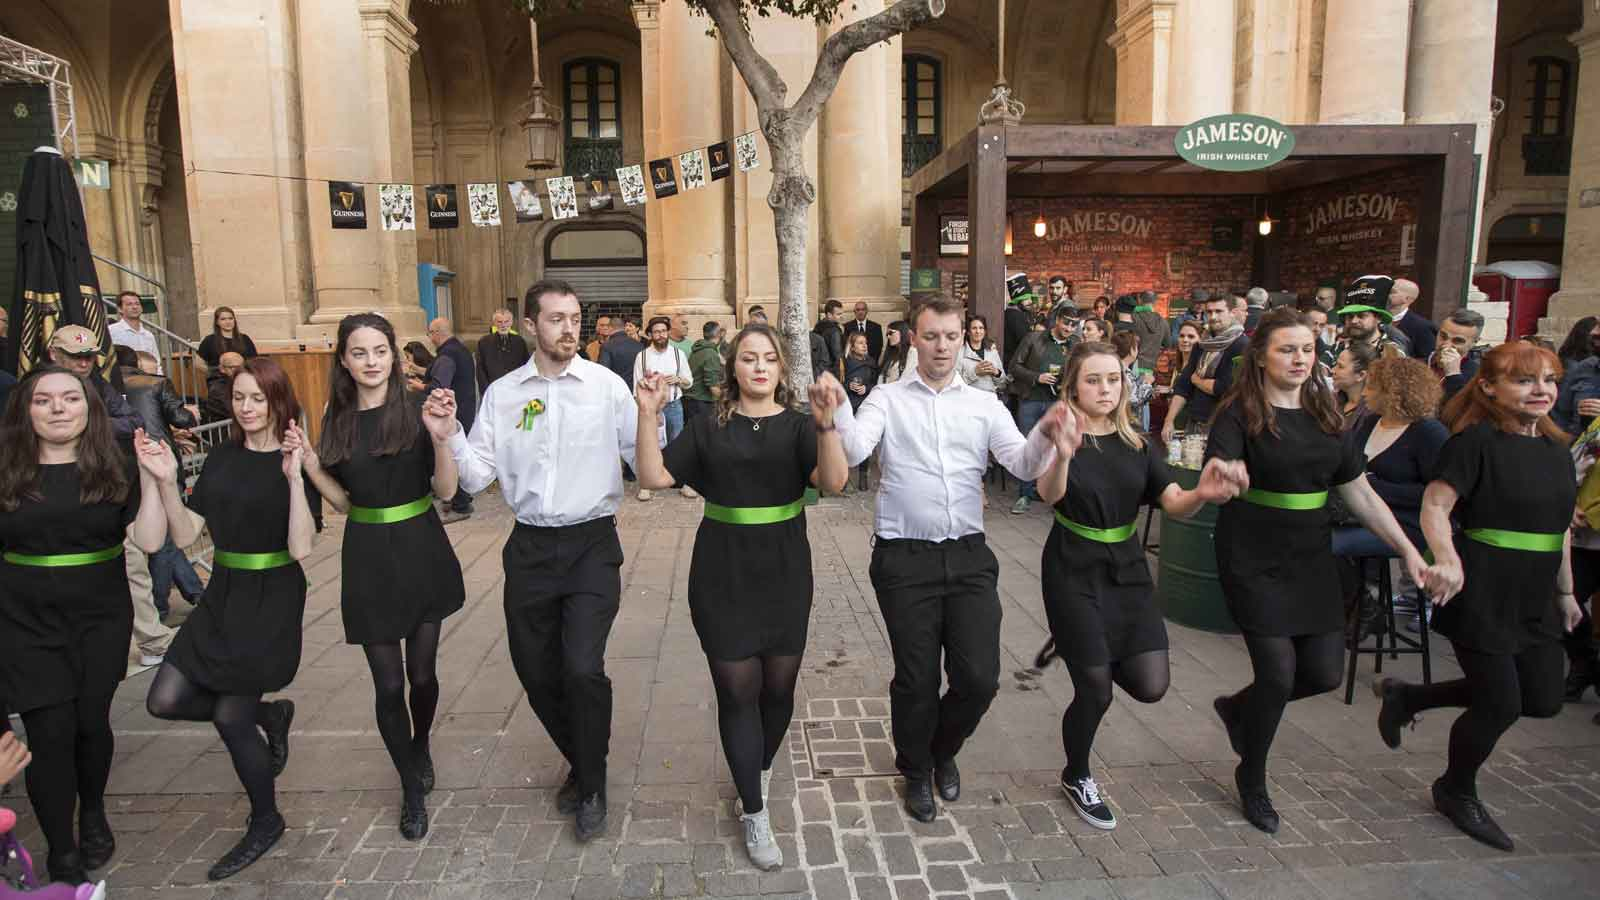 St Patrick's Day celebrated in Valletta